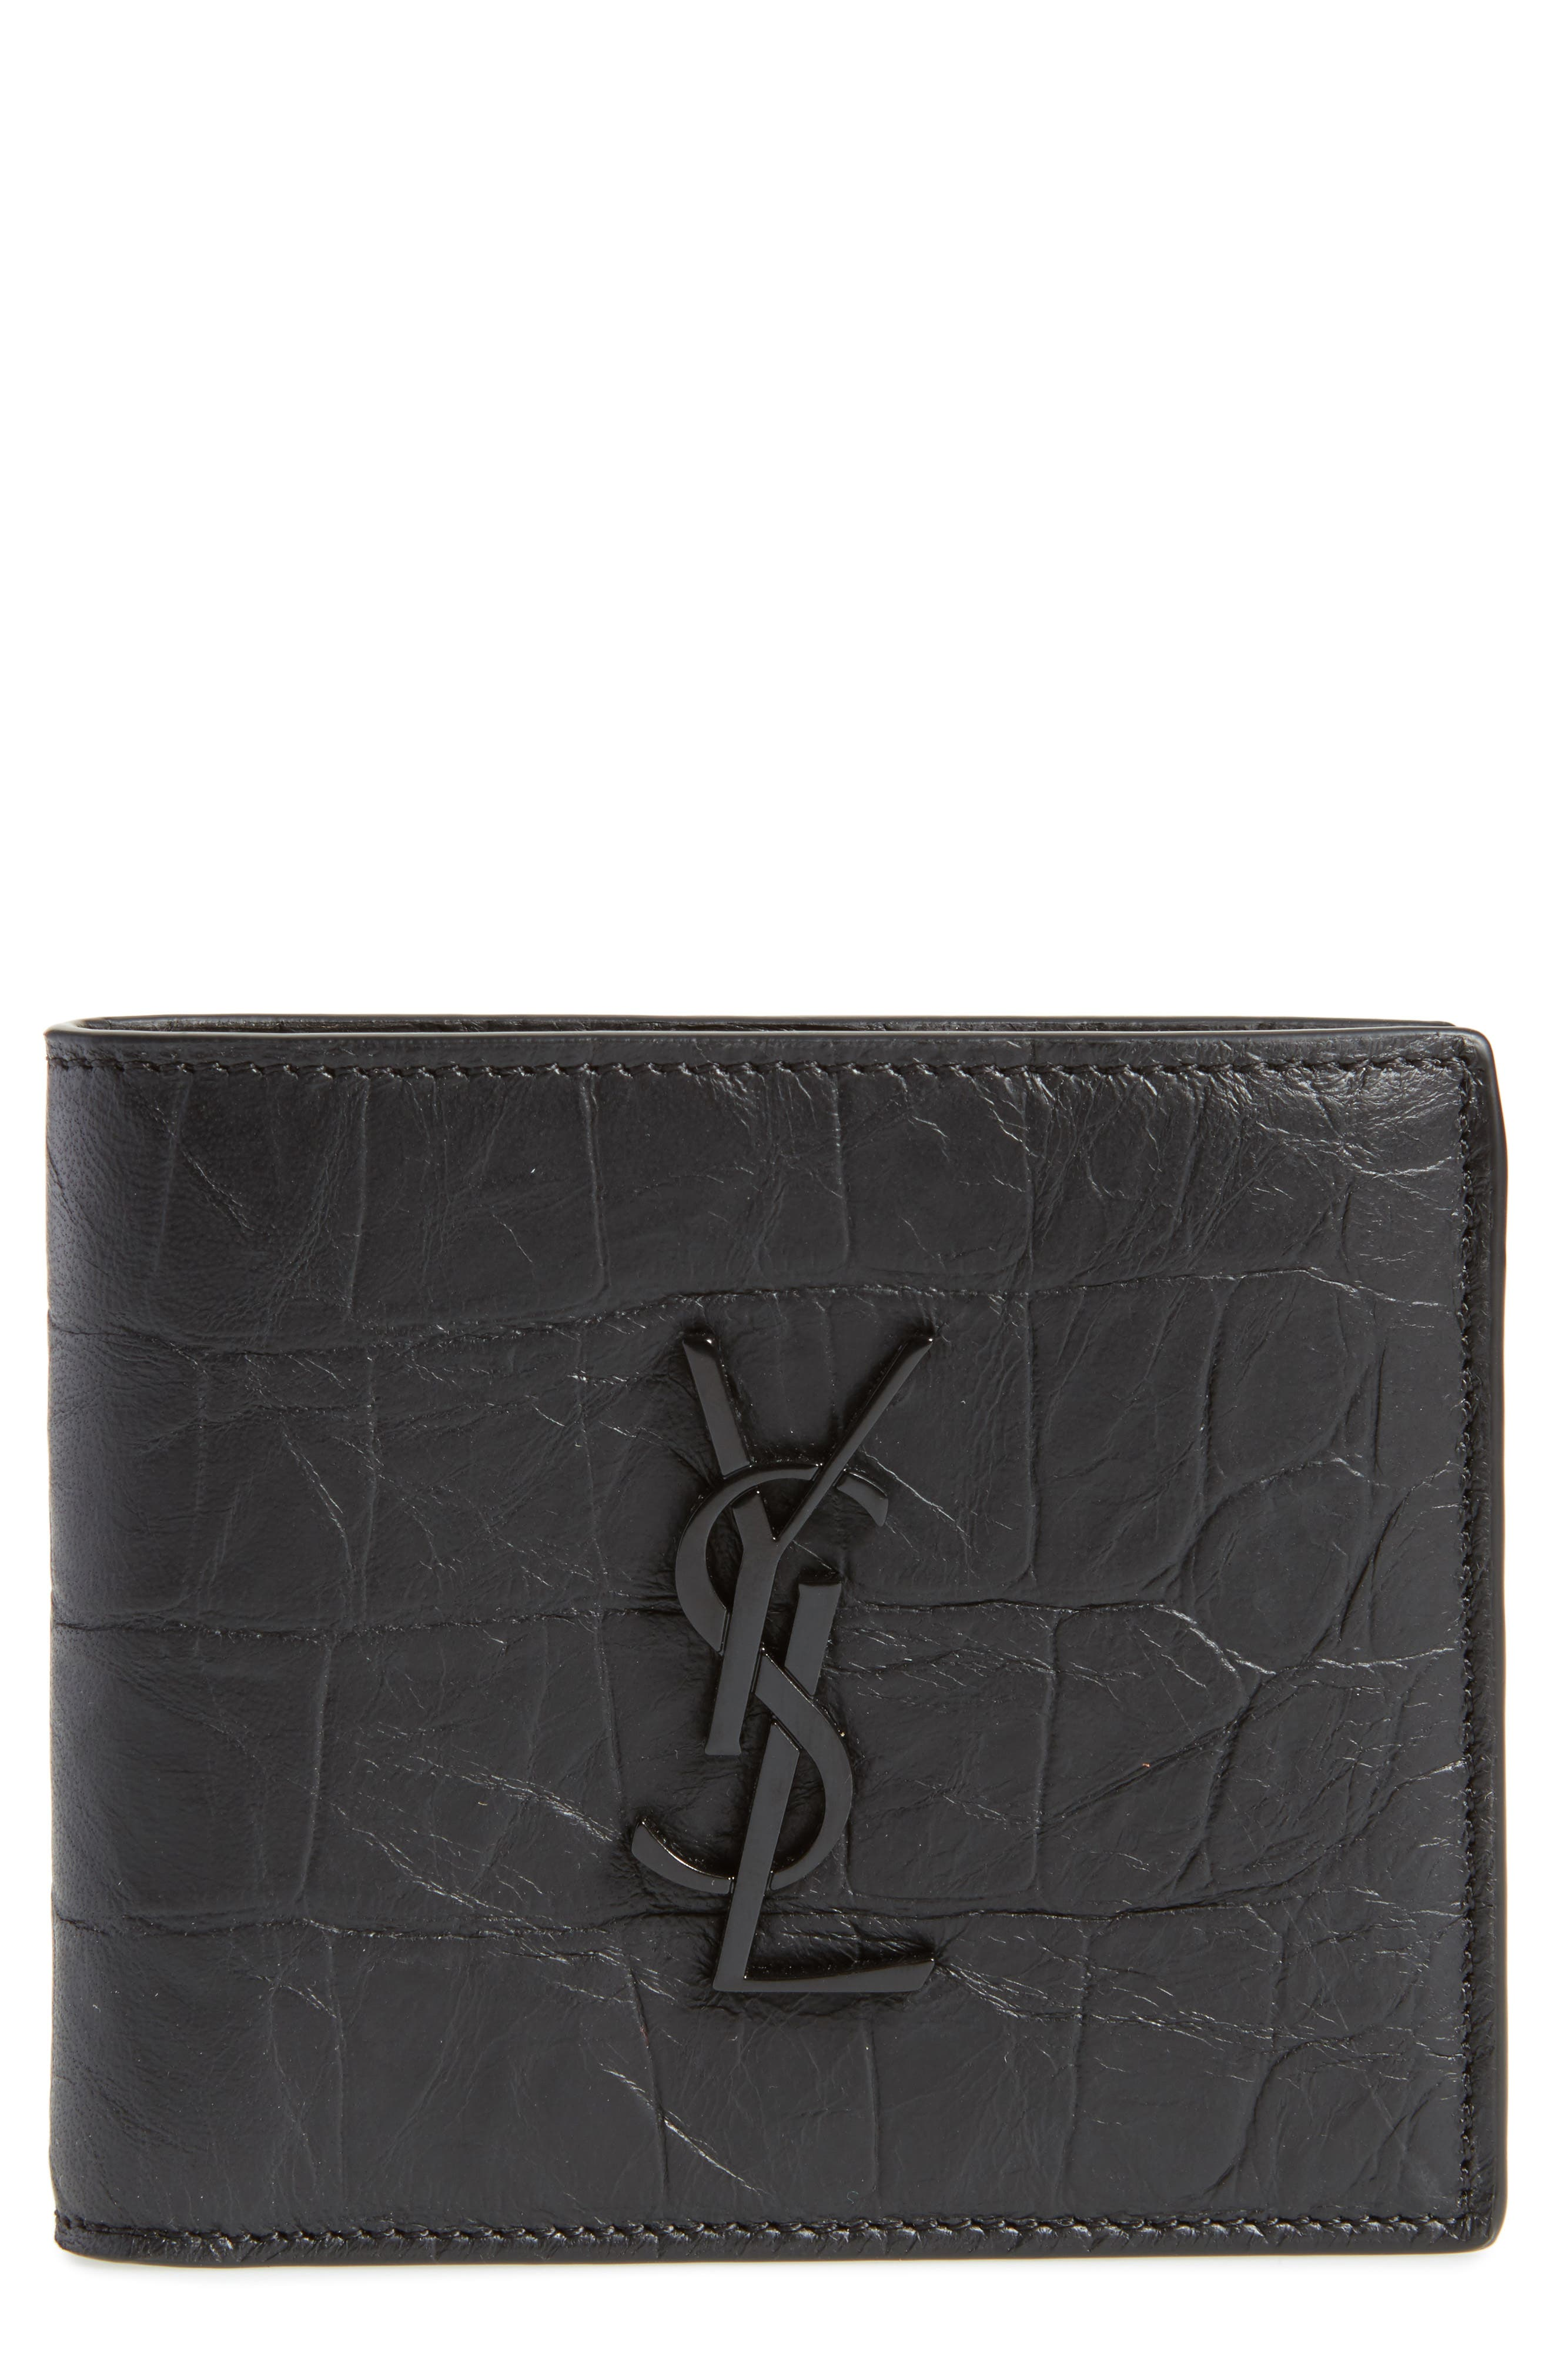 Croc Embossed Leather Wallet,                             Main thumbnail 1, color,                             Black